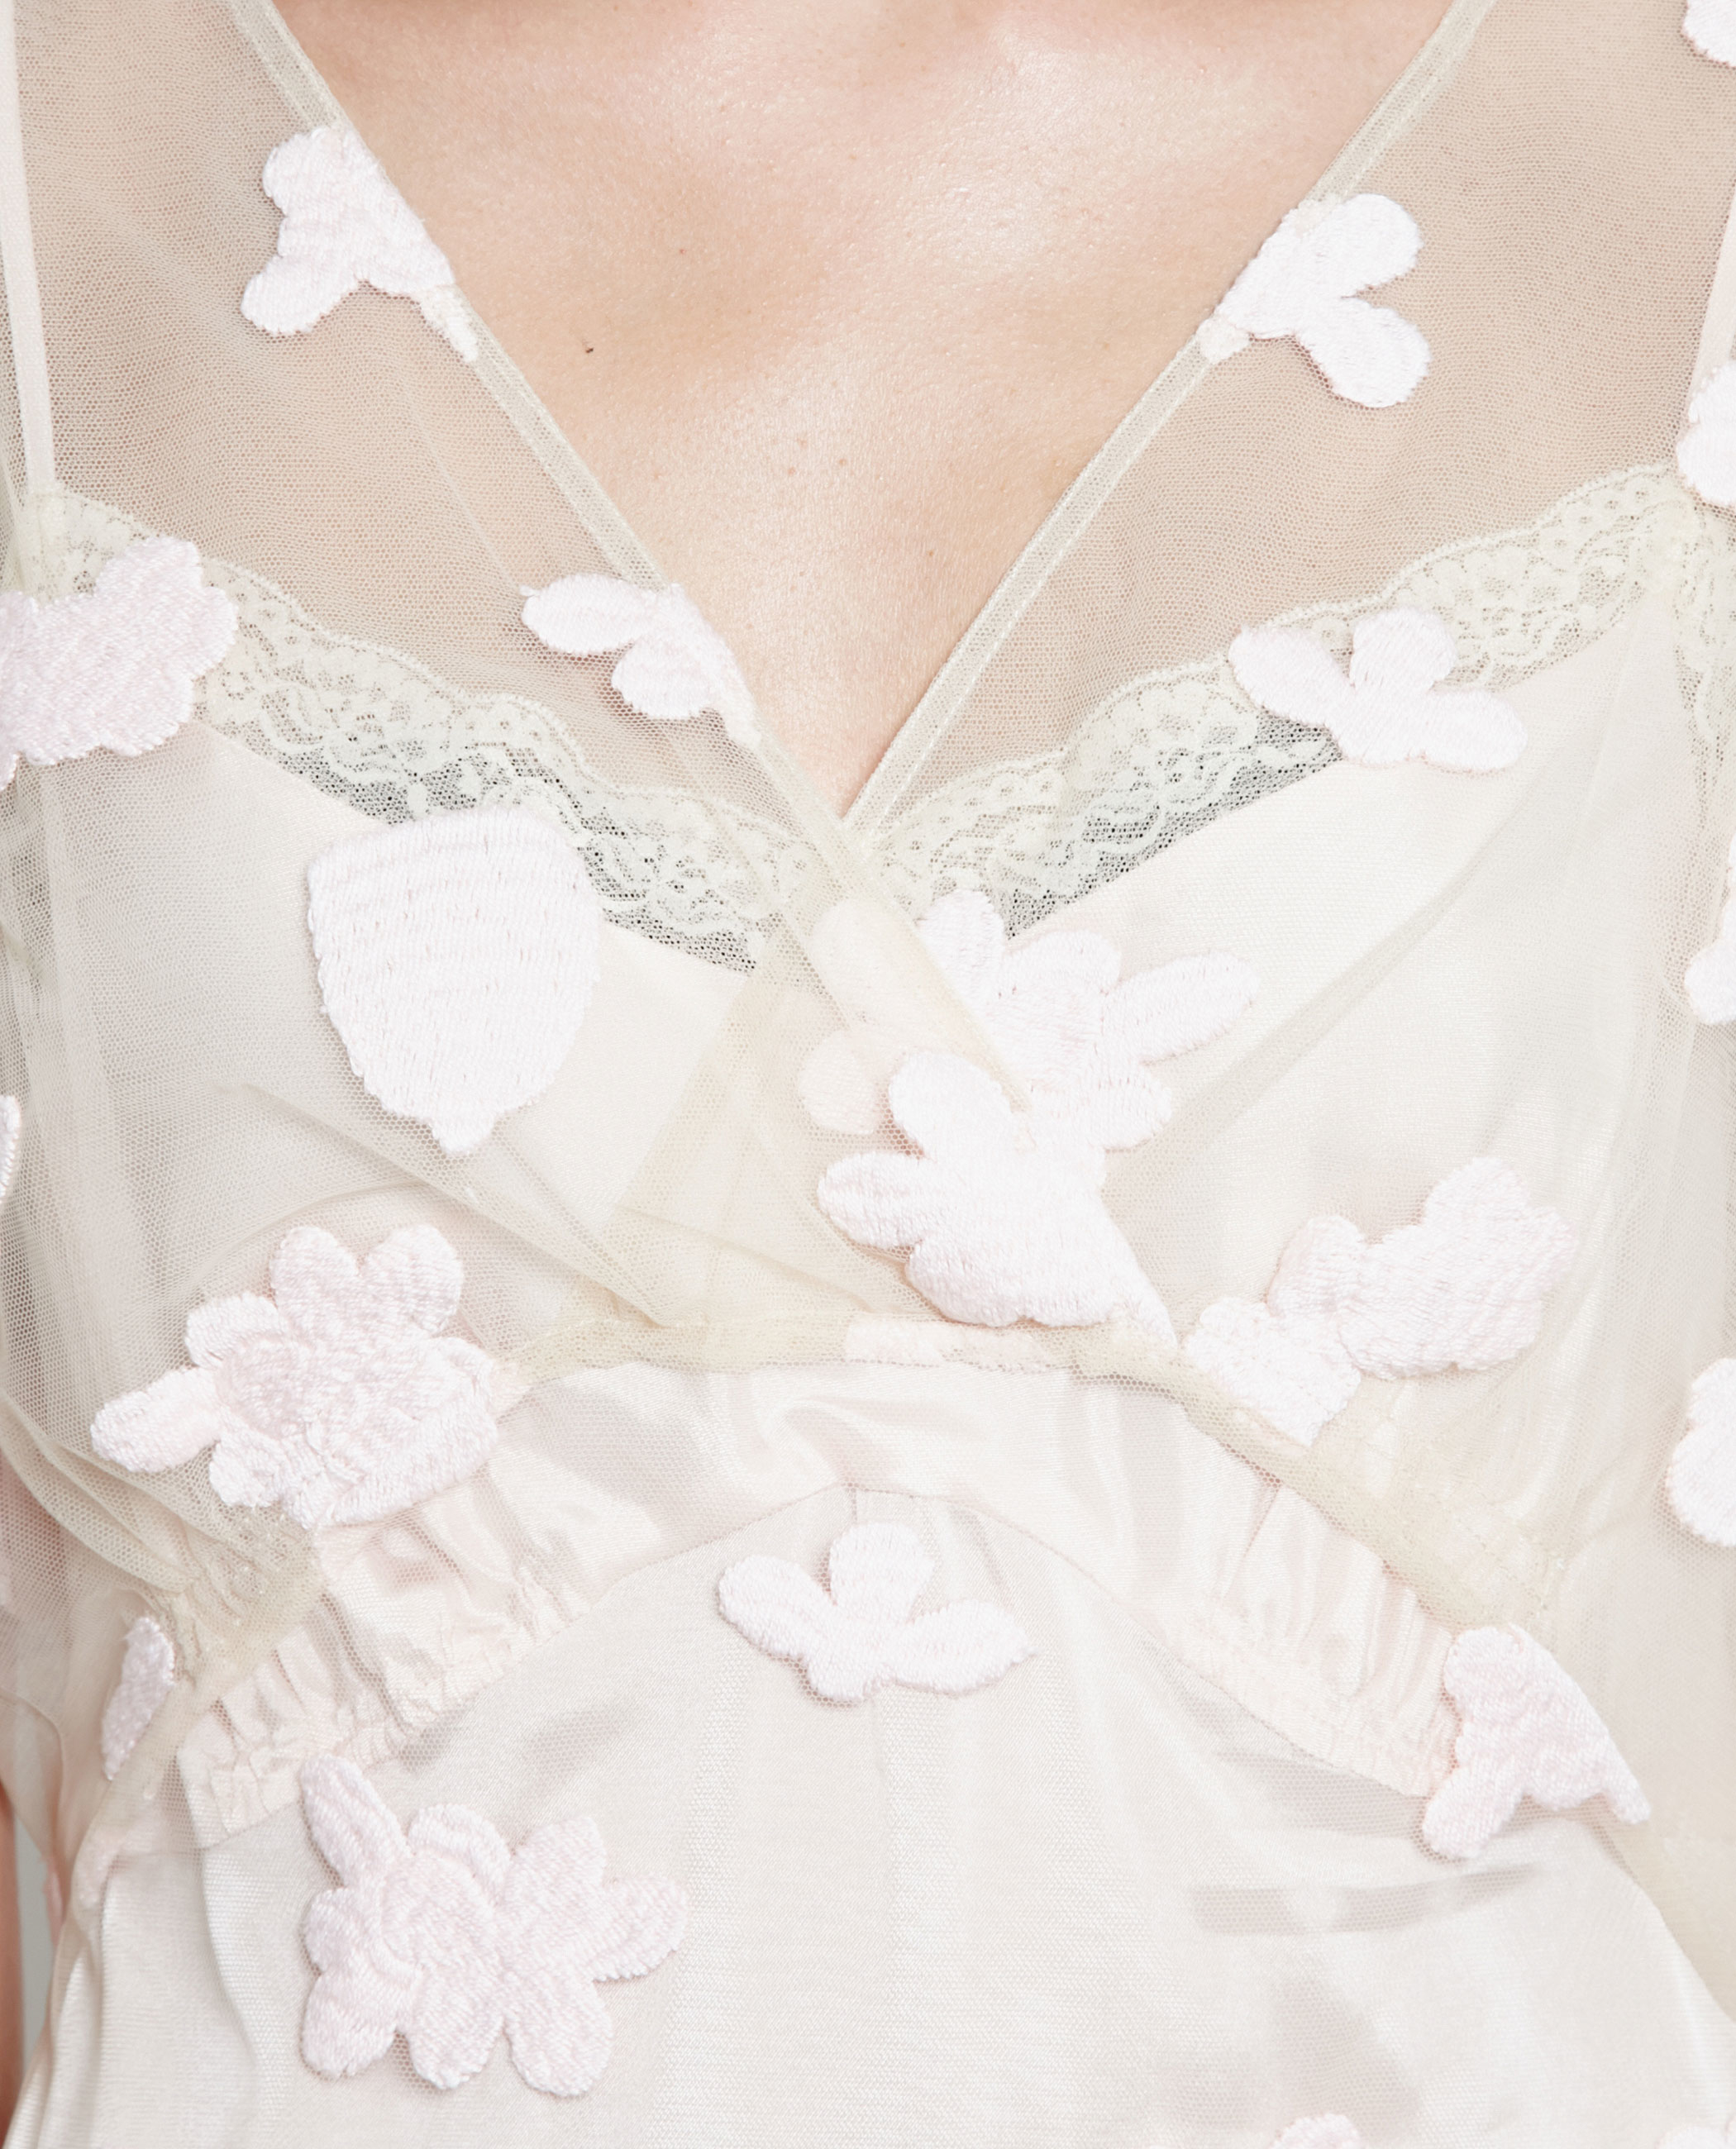 Simone rocha floral embroidered tie dress in pink lyst